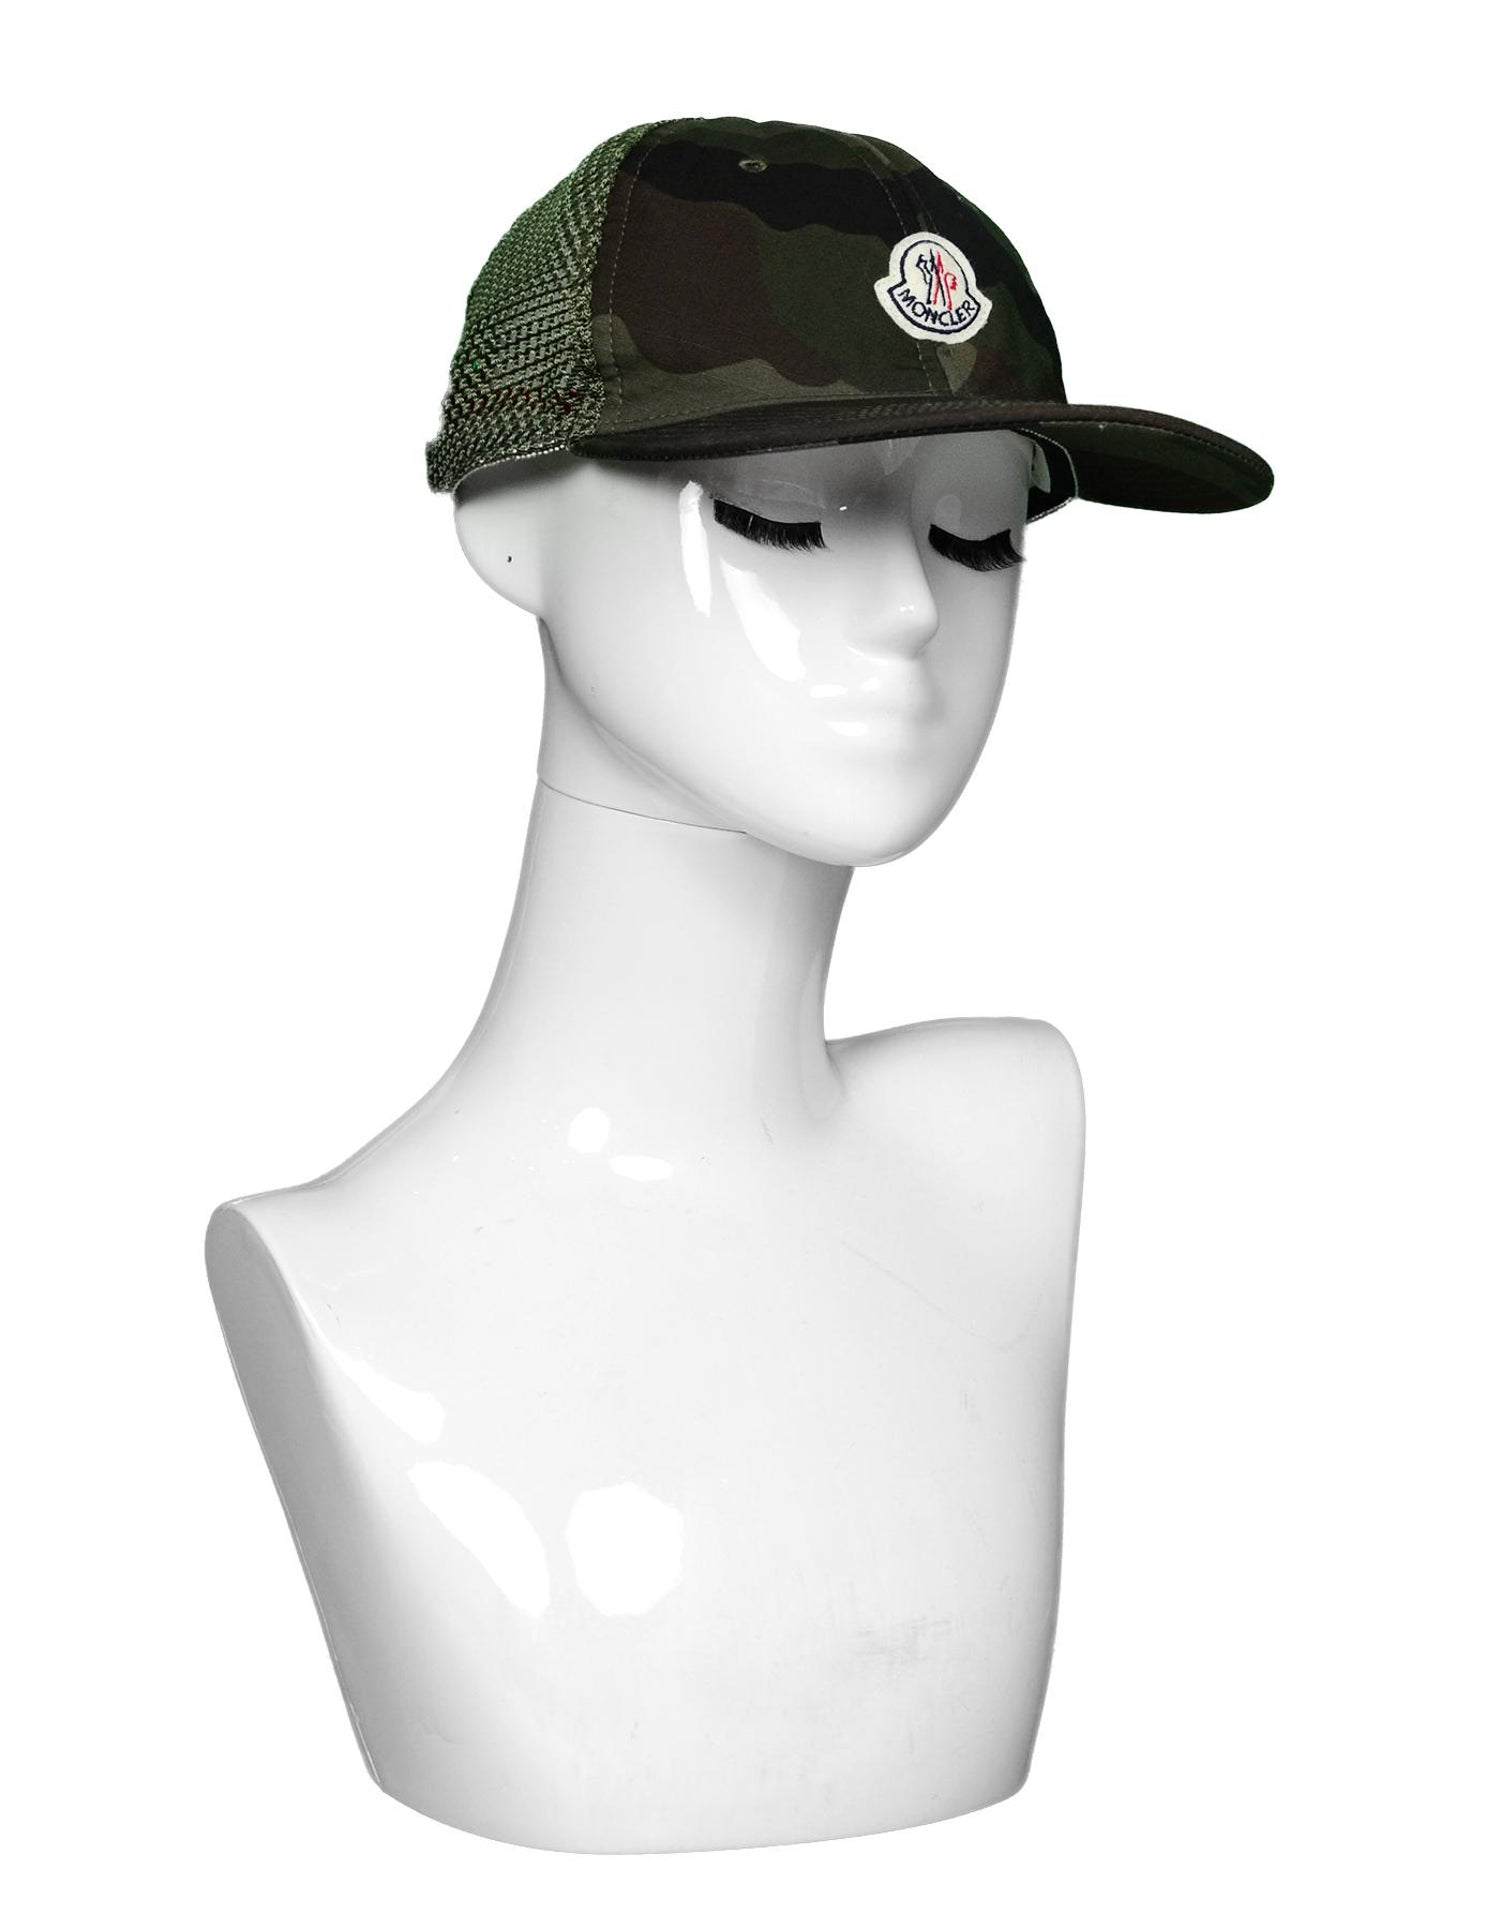 Moncler Camouflage Woven Baseball Cap Hat For Sale at 1stdibs 103c64f2a90